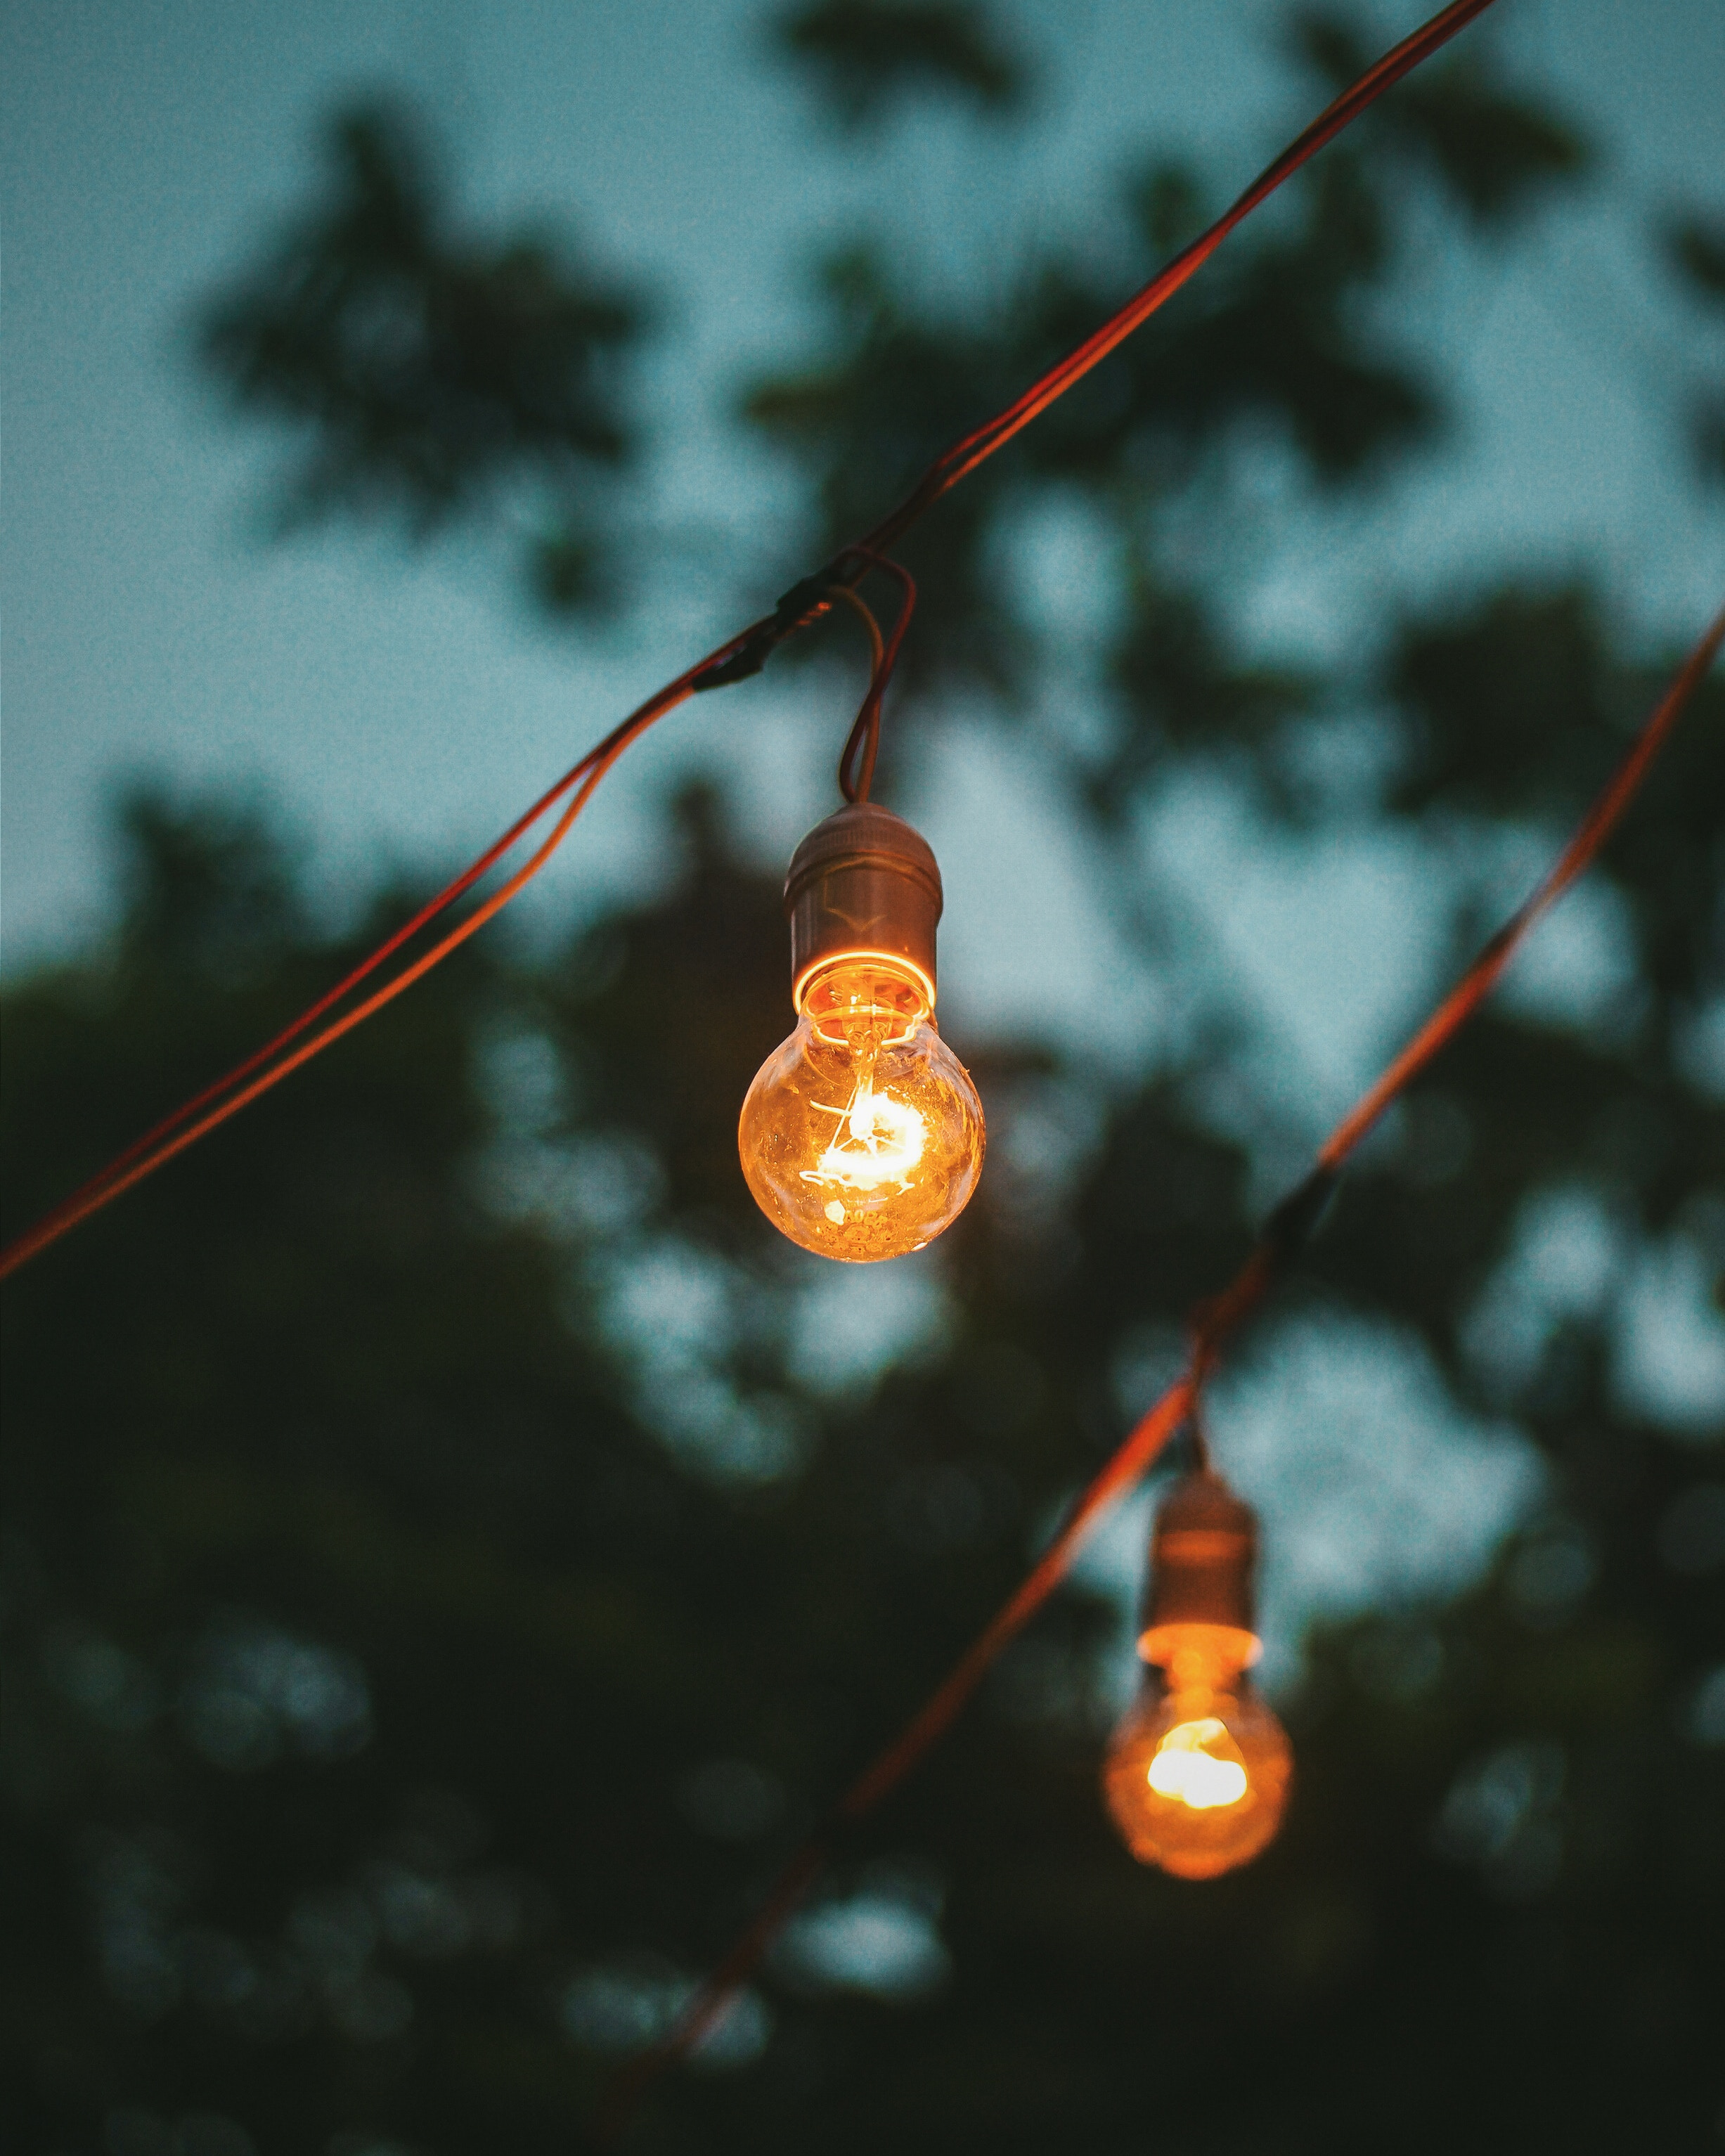 128006 Screensavers and Wallpapers Lamp for phone. Download Shine, Light, Miscellanea, Miscellaneous, Blur, Smooth, Lamp, Wires, Wire, Electricity pictures for free